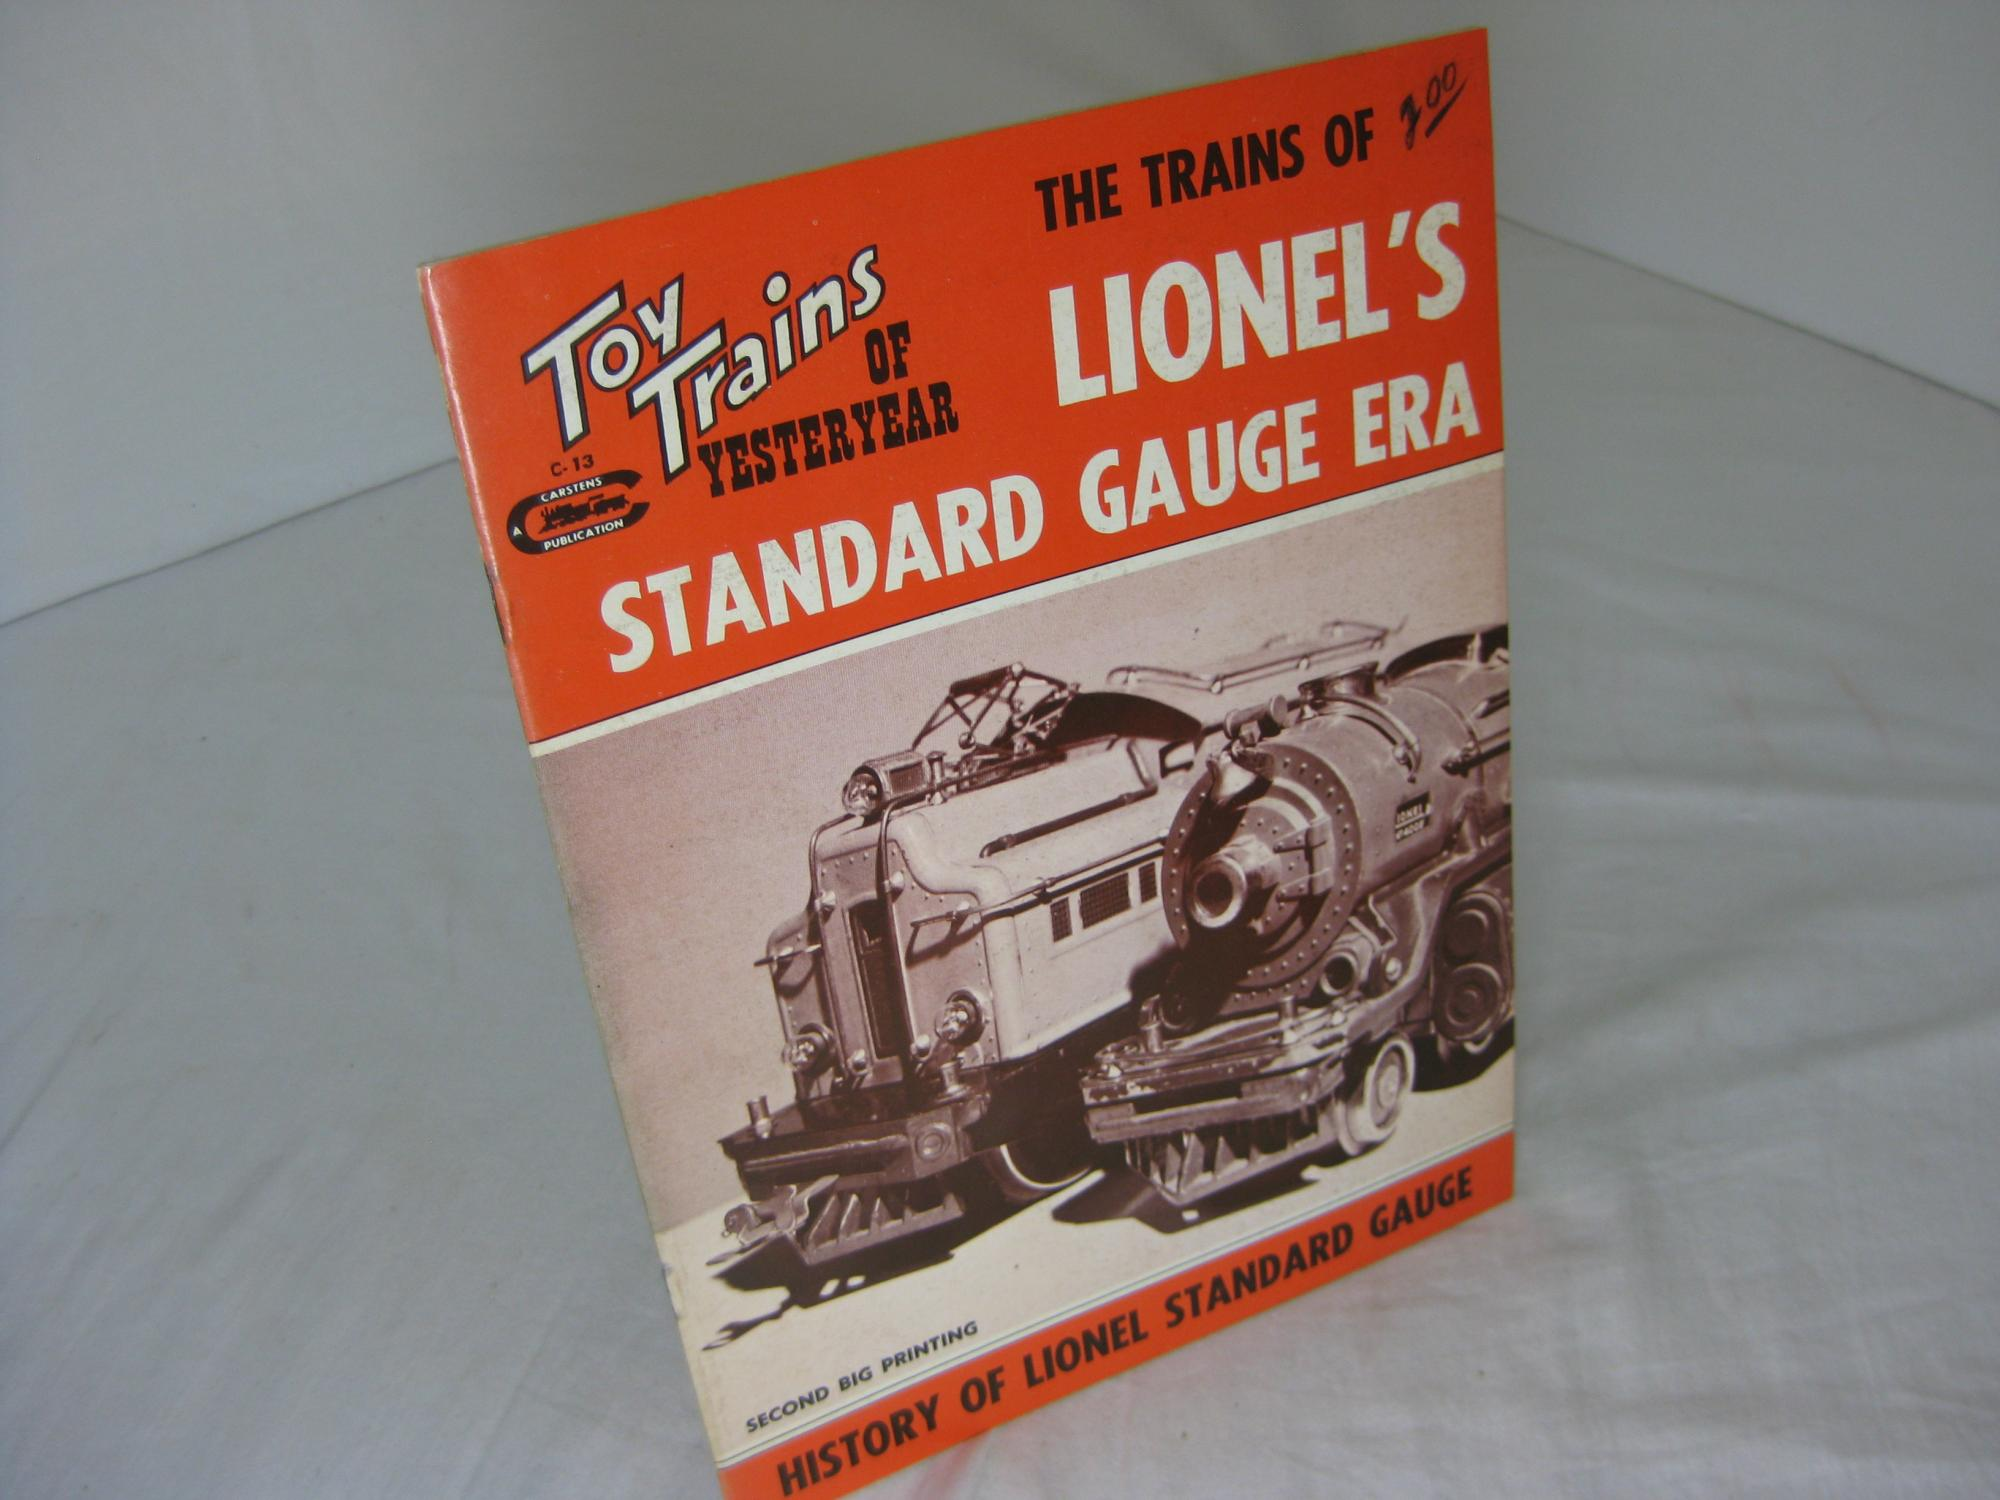 The Trains of Lionel's Standard Gauge Era Toy Trains of Yesteryear by  Harold H  Carstens on Frey Fine Books